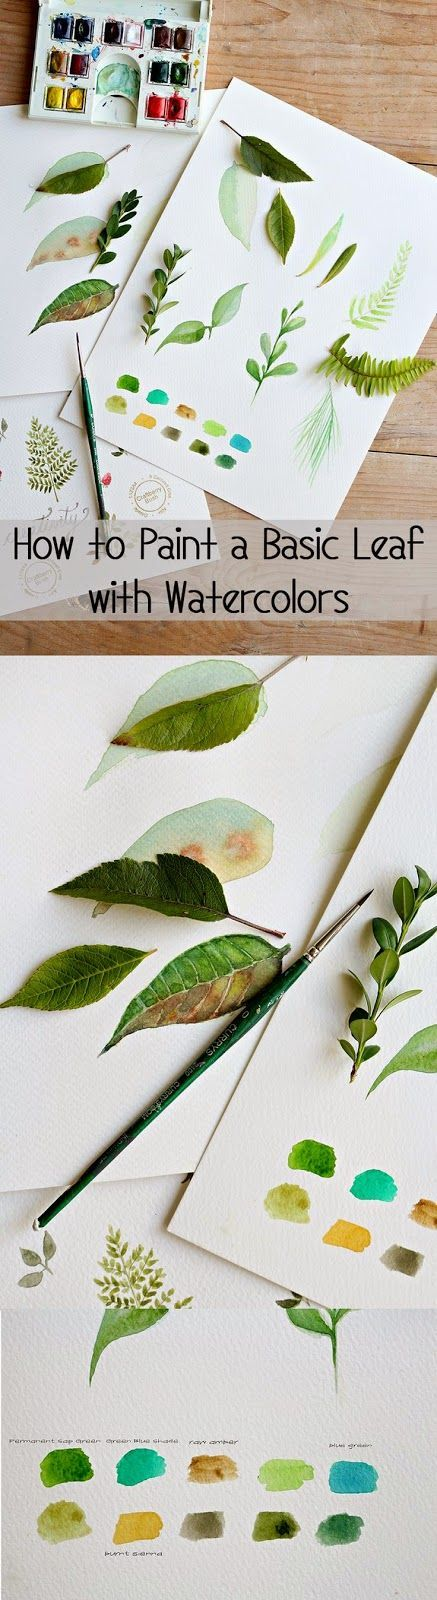 How to paint a basic leaf with watercolors - couldn't be easier! Paint like a pro with this SUPER simple tutorial.